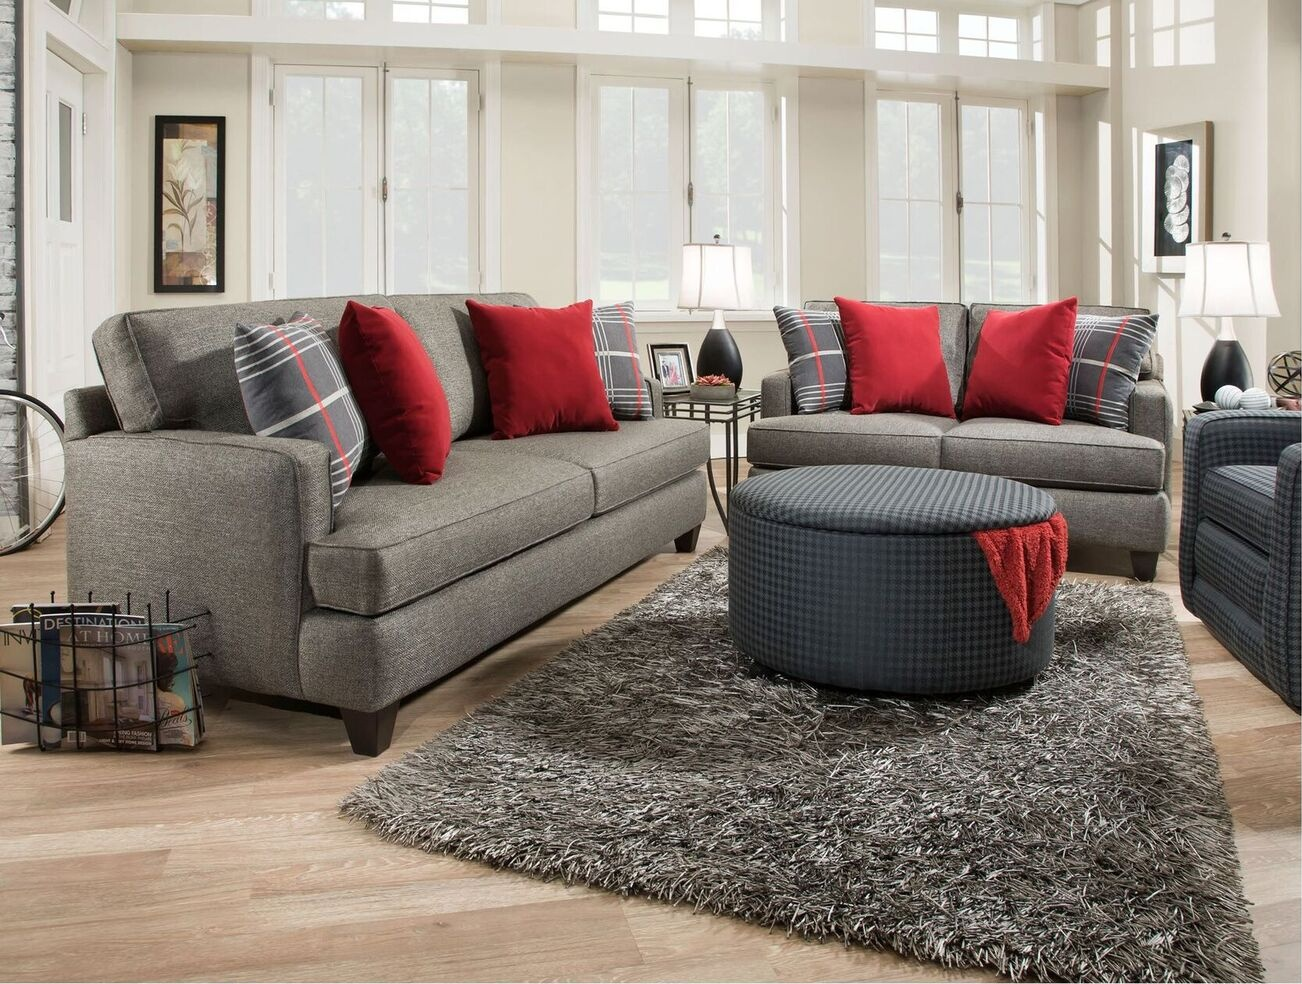 Furniture clearance center upholstered for Affordable furniture greensboro nc